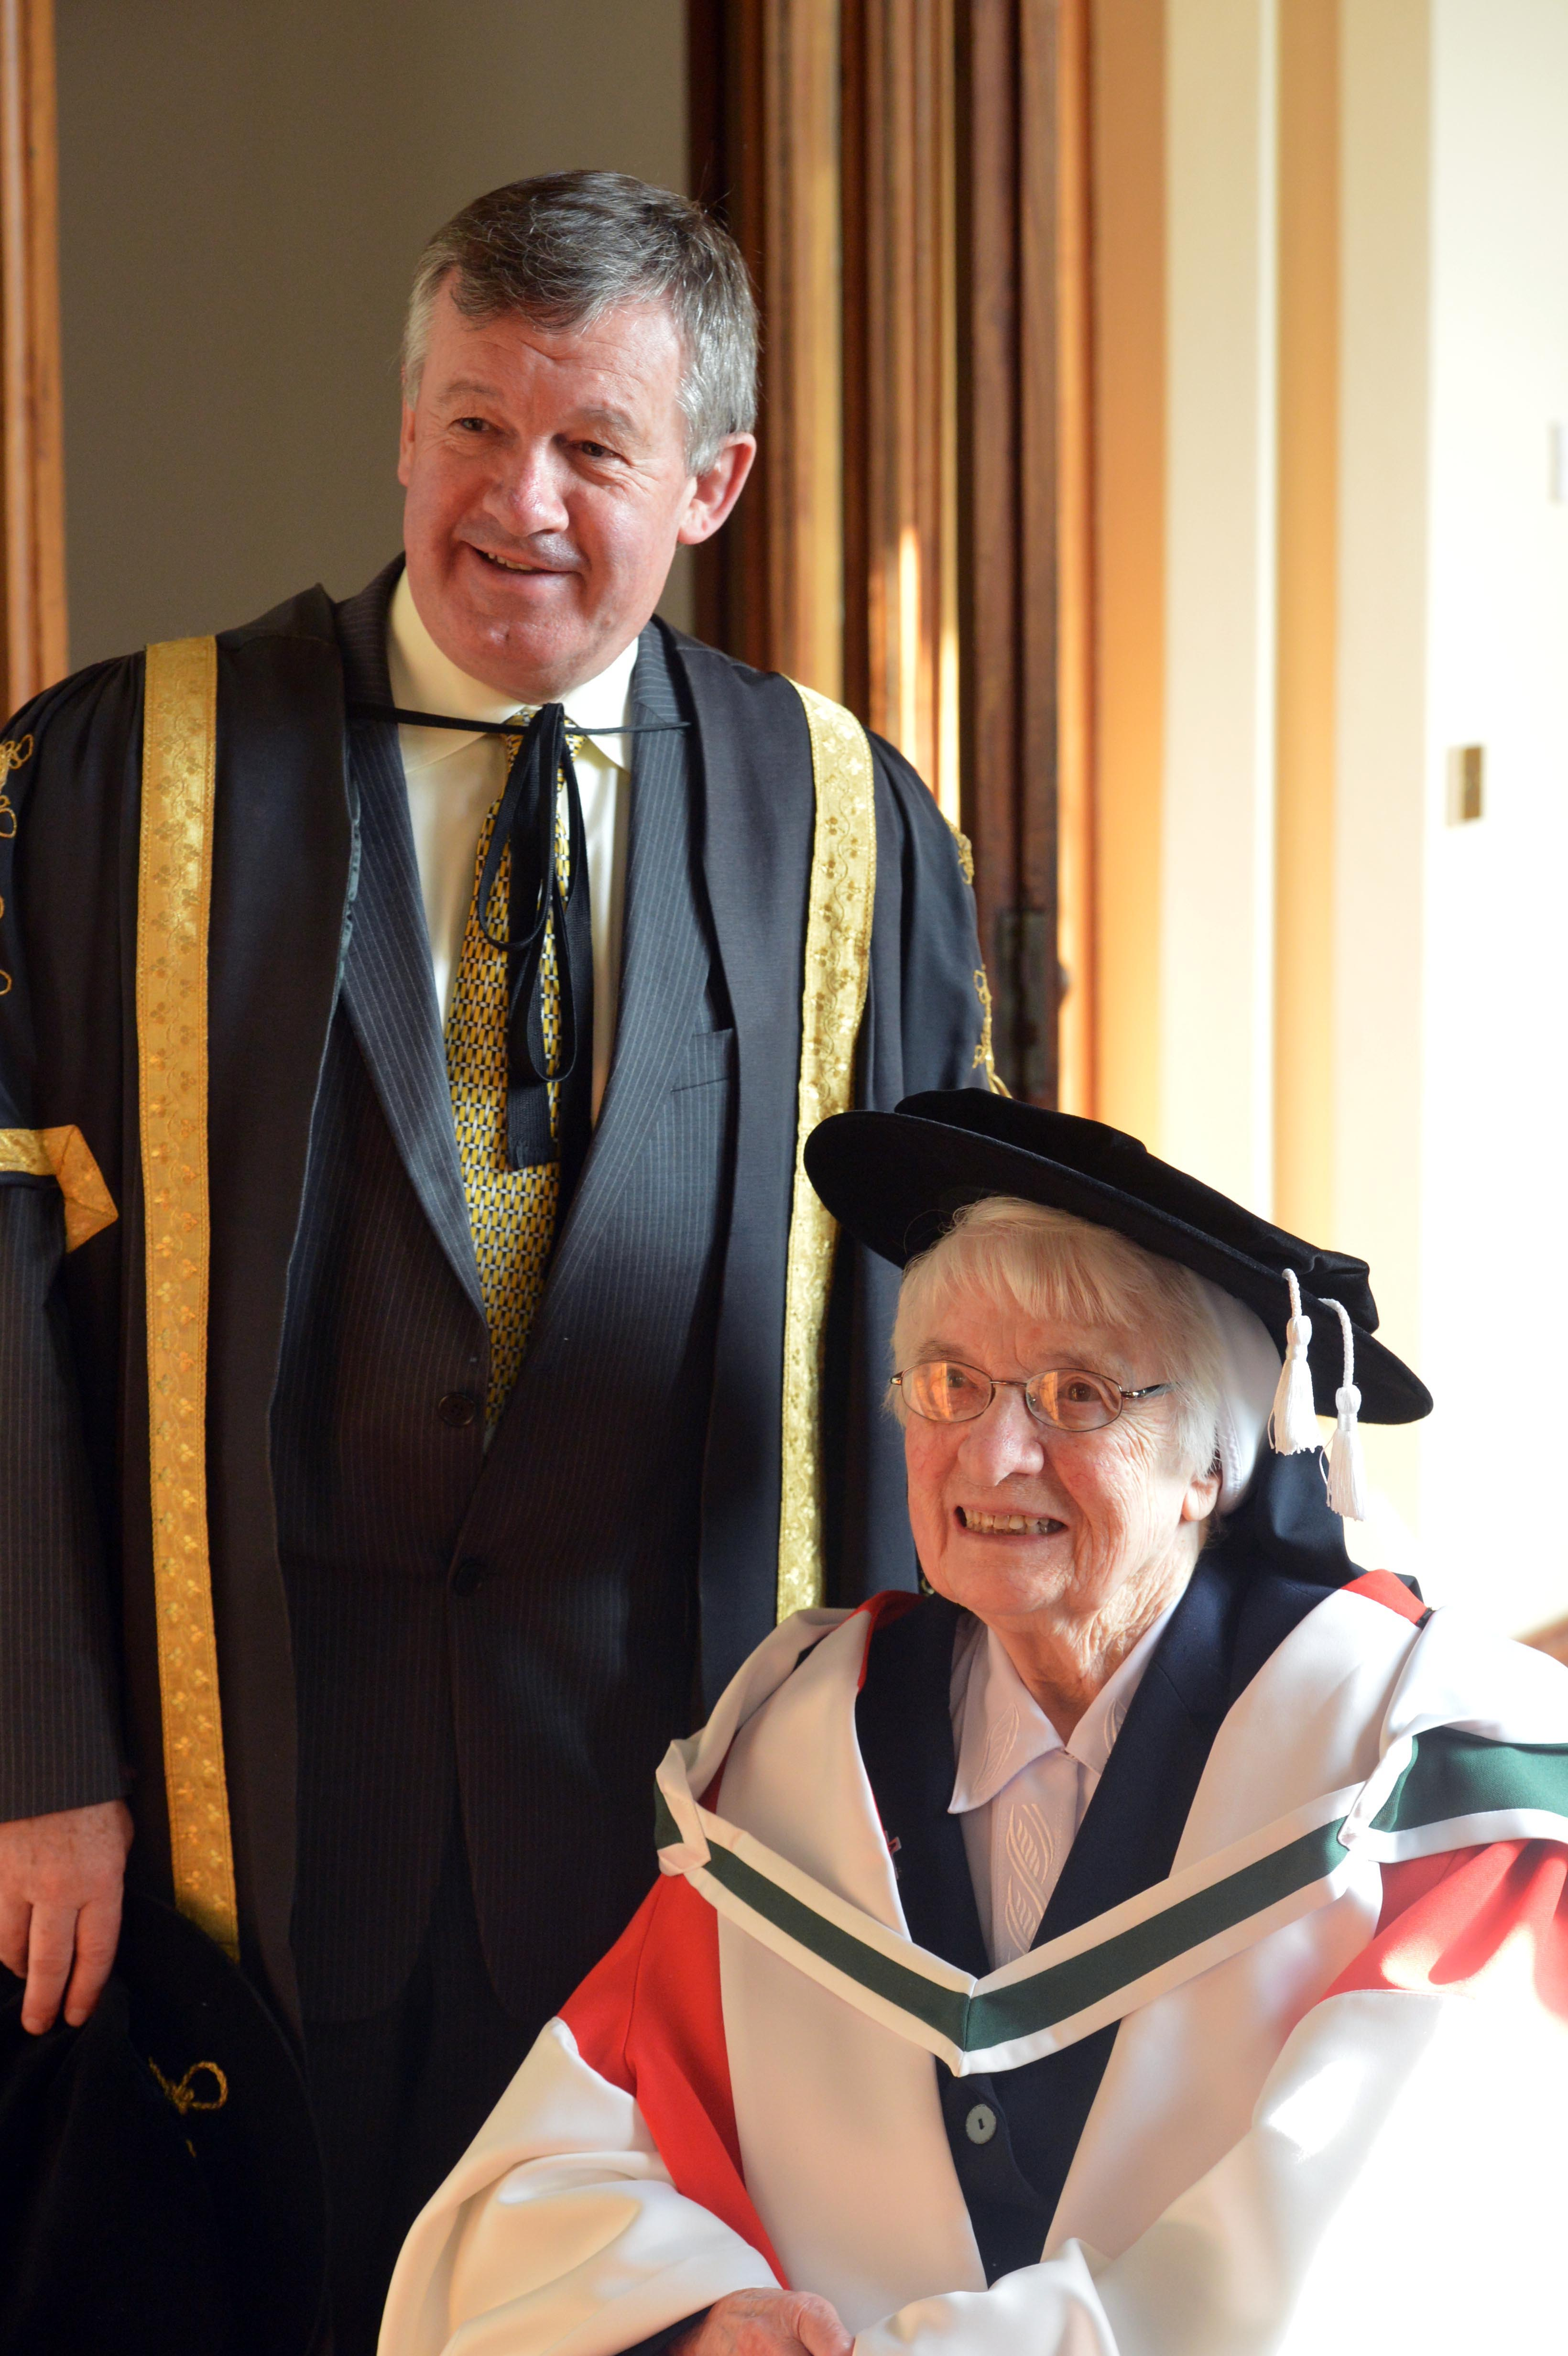 Sr Mercedes Desmond, one of the founders the Irish Science Teachers' Association (ISTA), with President Dr. Michael Murphy.